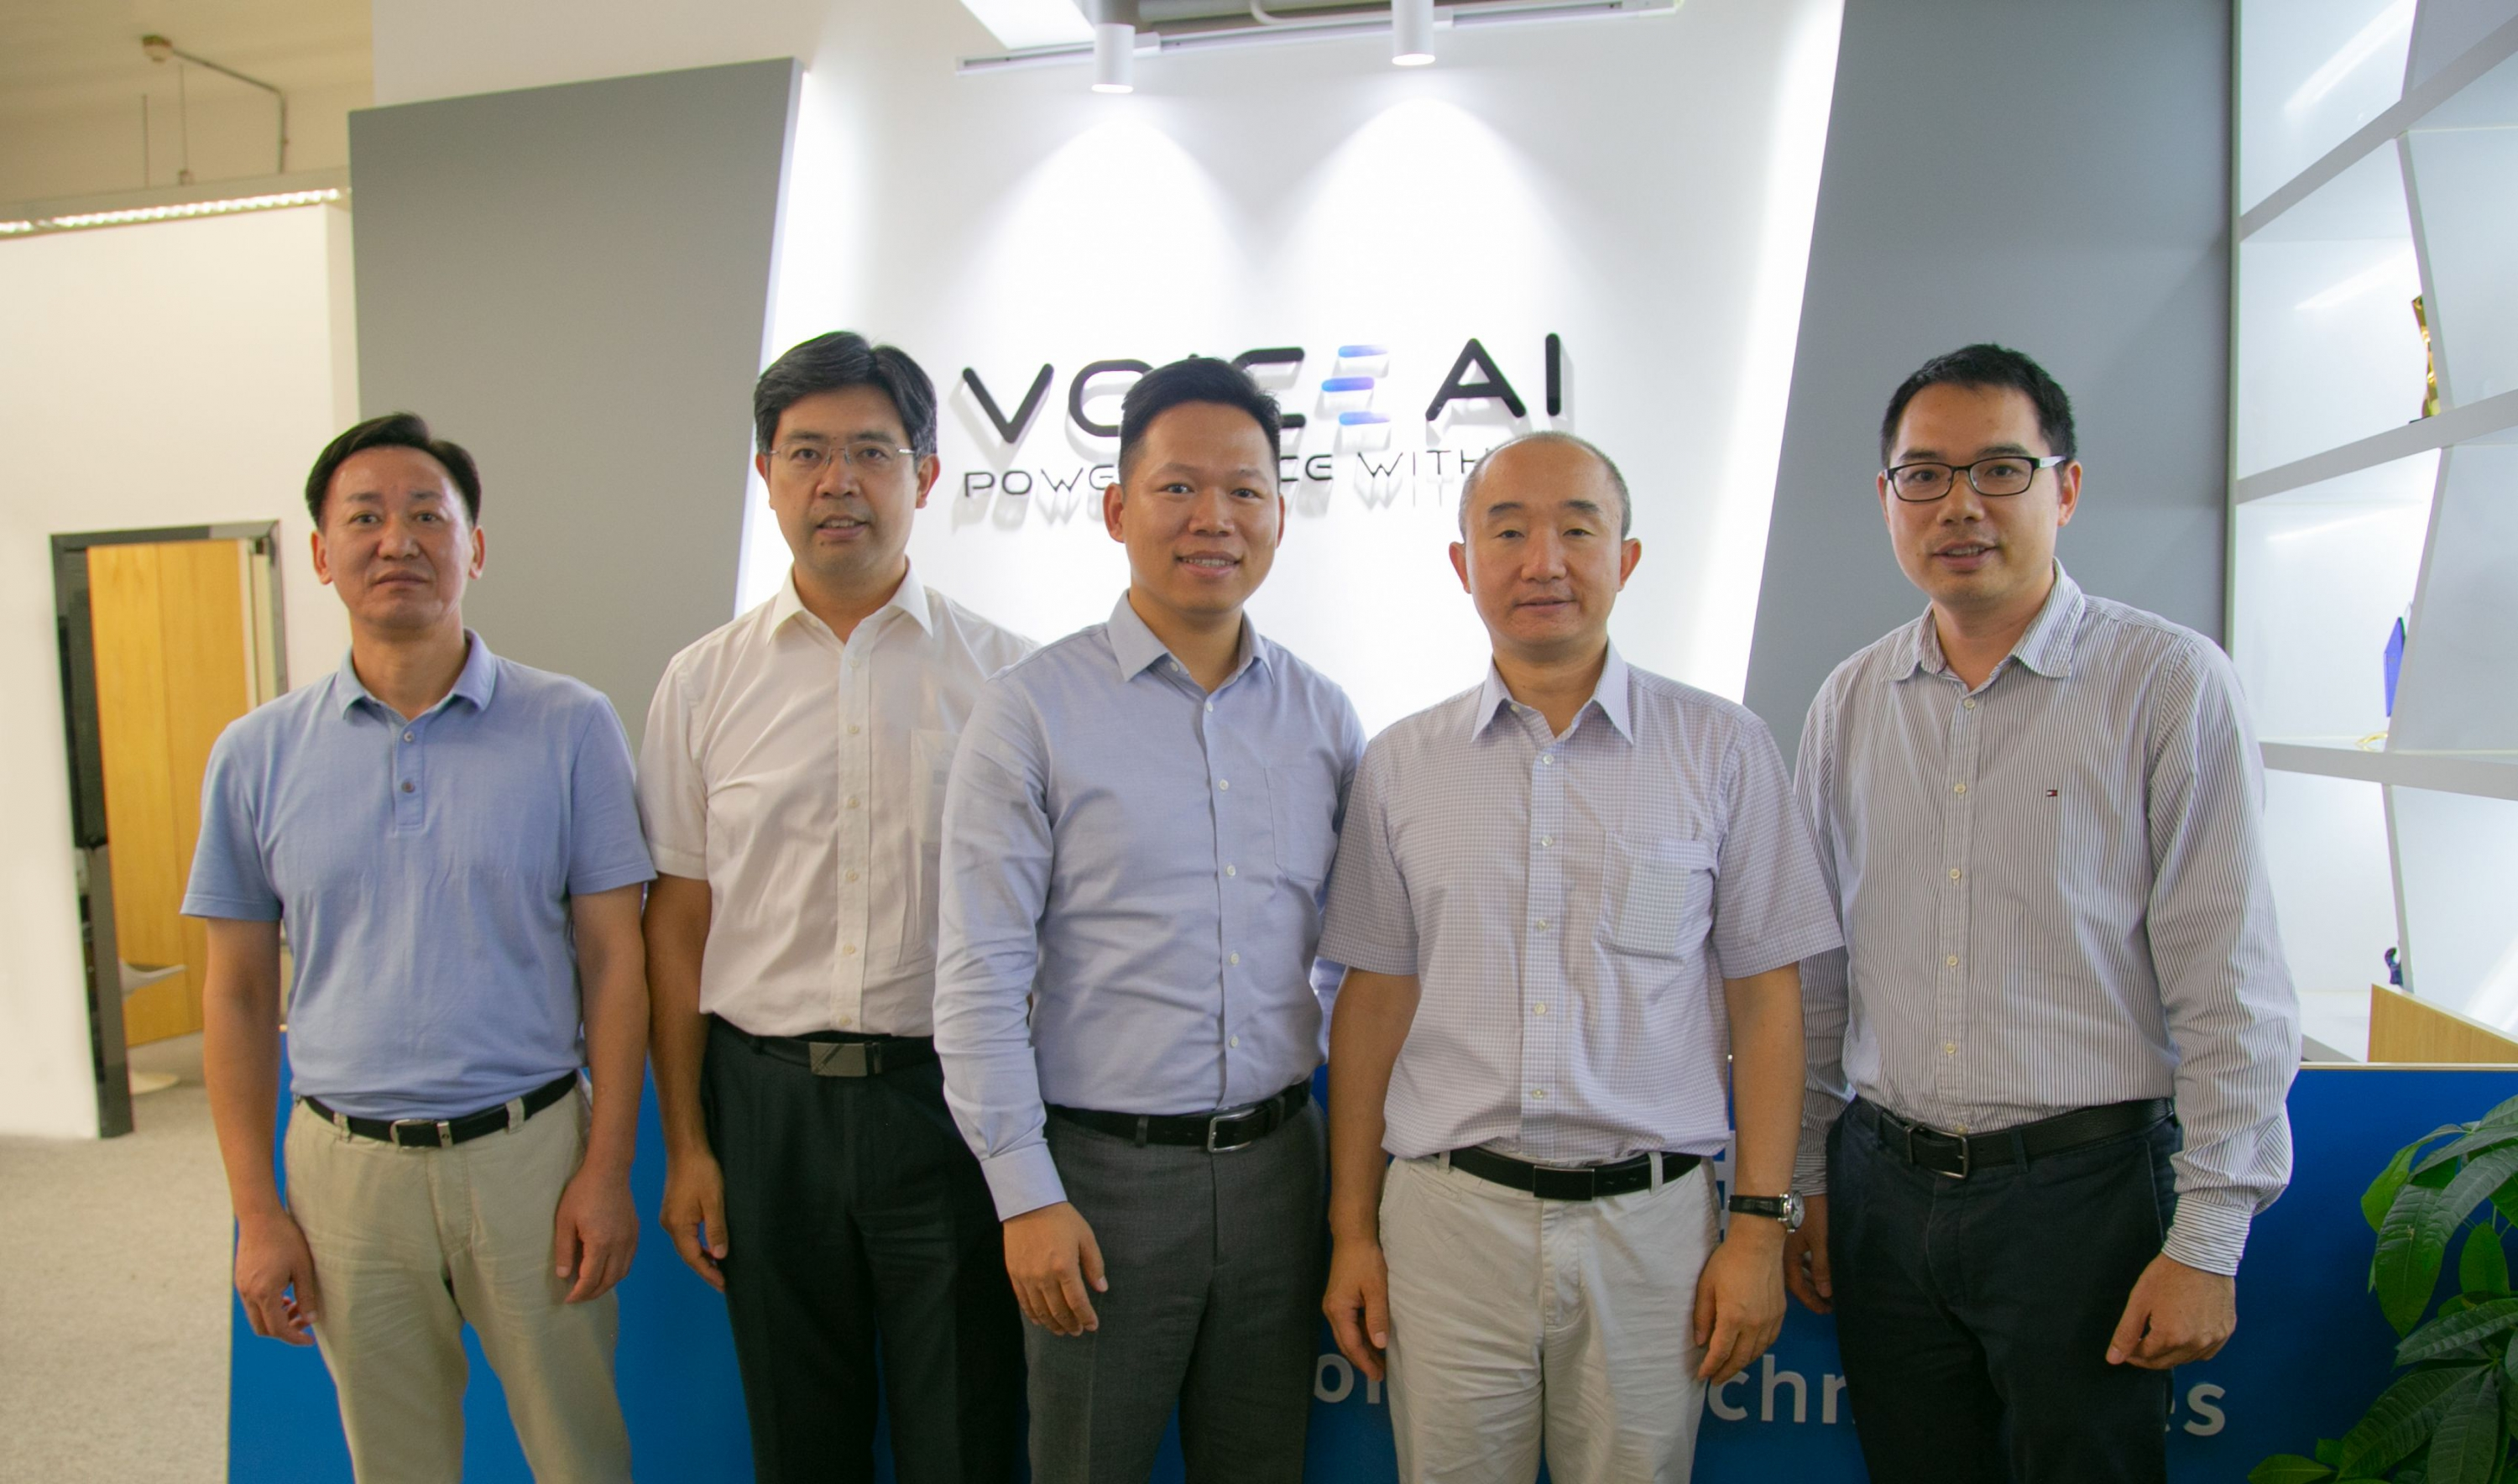 Dr. MA Mingjie, Deputy Director-General of the Techno-Economic Research Department of the Development Research Center of the State Council visits VoiceAI Tech.